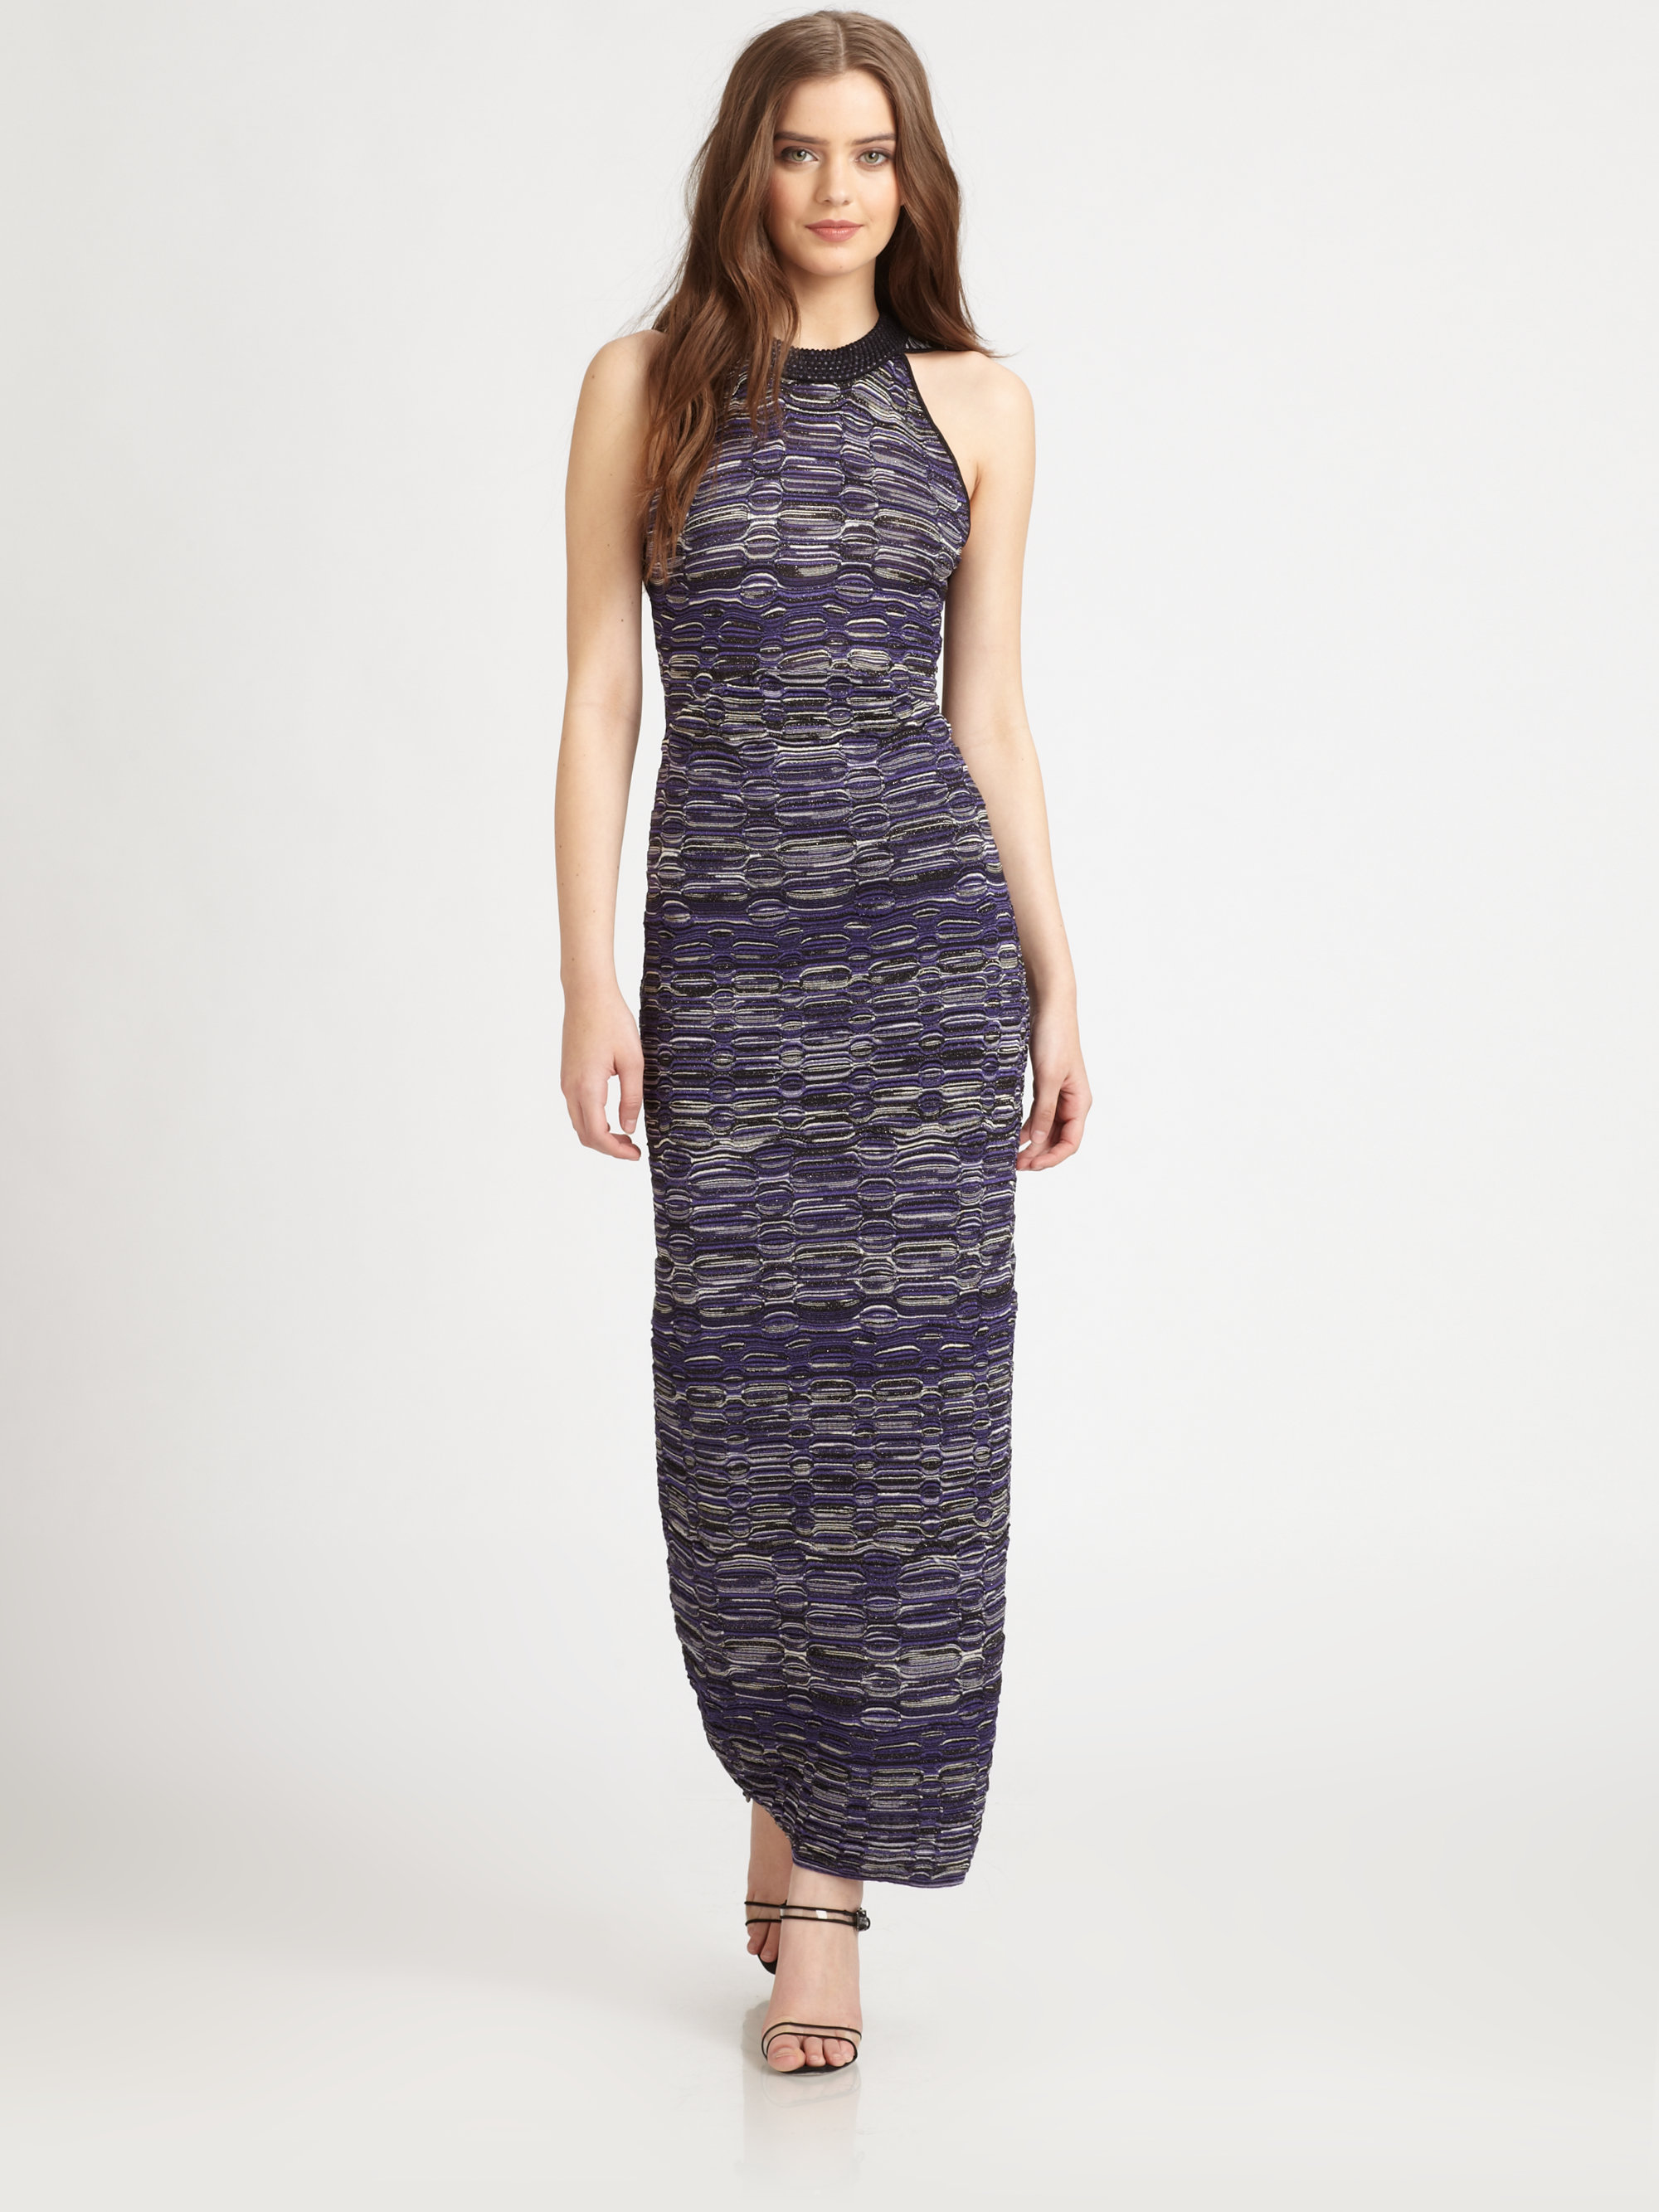 Knit Maxi Dress Pattern : M missoni Multipattern Knit Maxi Dress in Gray Lyst